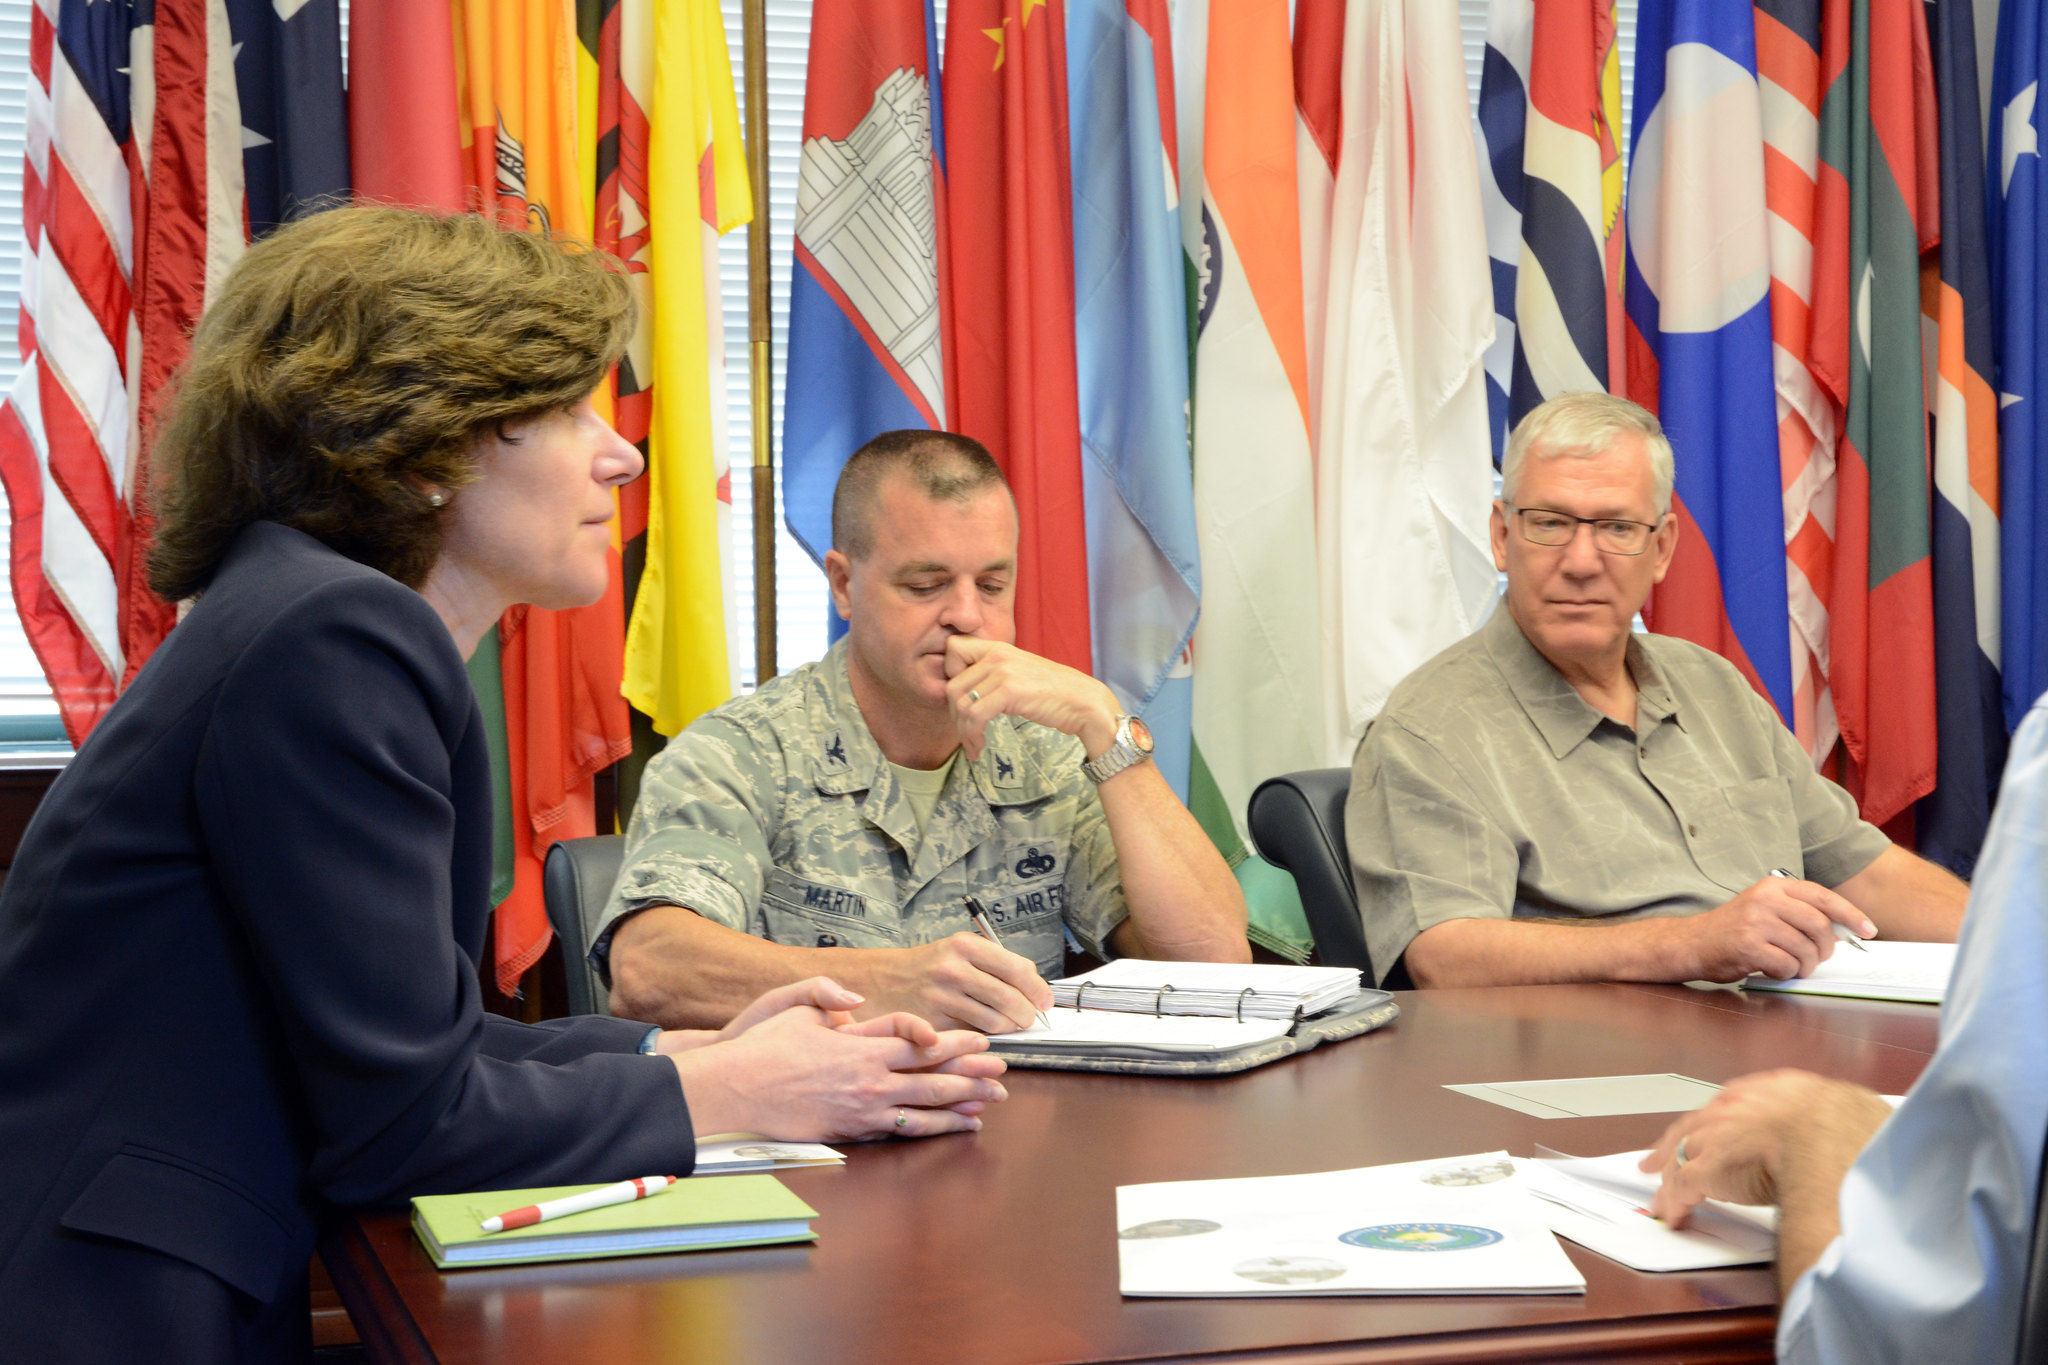 Deputy Assistant Secretary of Defense for Stability and Humanitarian Affairs Anne Witkowsky meets with Center for Excellence in Disaster Management and Humanitarian Assistance Director Col. Joseph Martin and Deputy Director Douglas Wallace at the organization's headquarters in Pearl Harbor, Hawaii July 24, 2015. (US Government Photo)